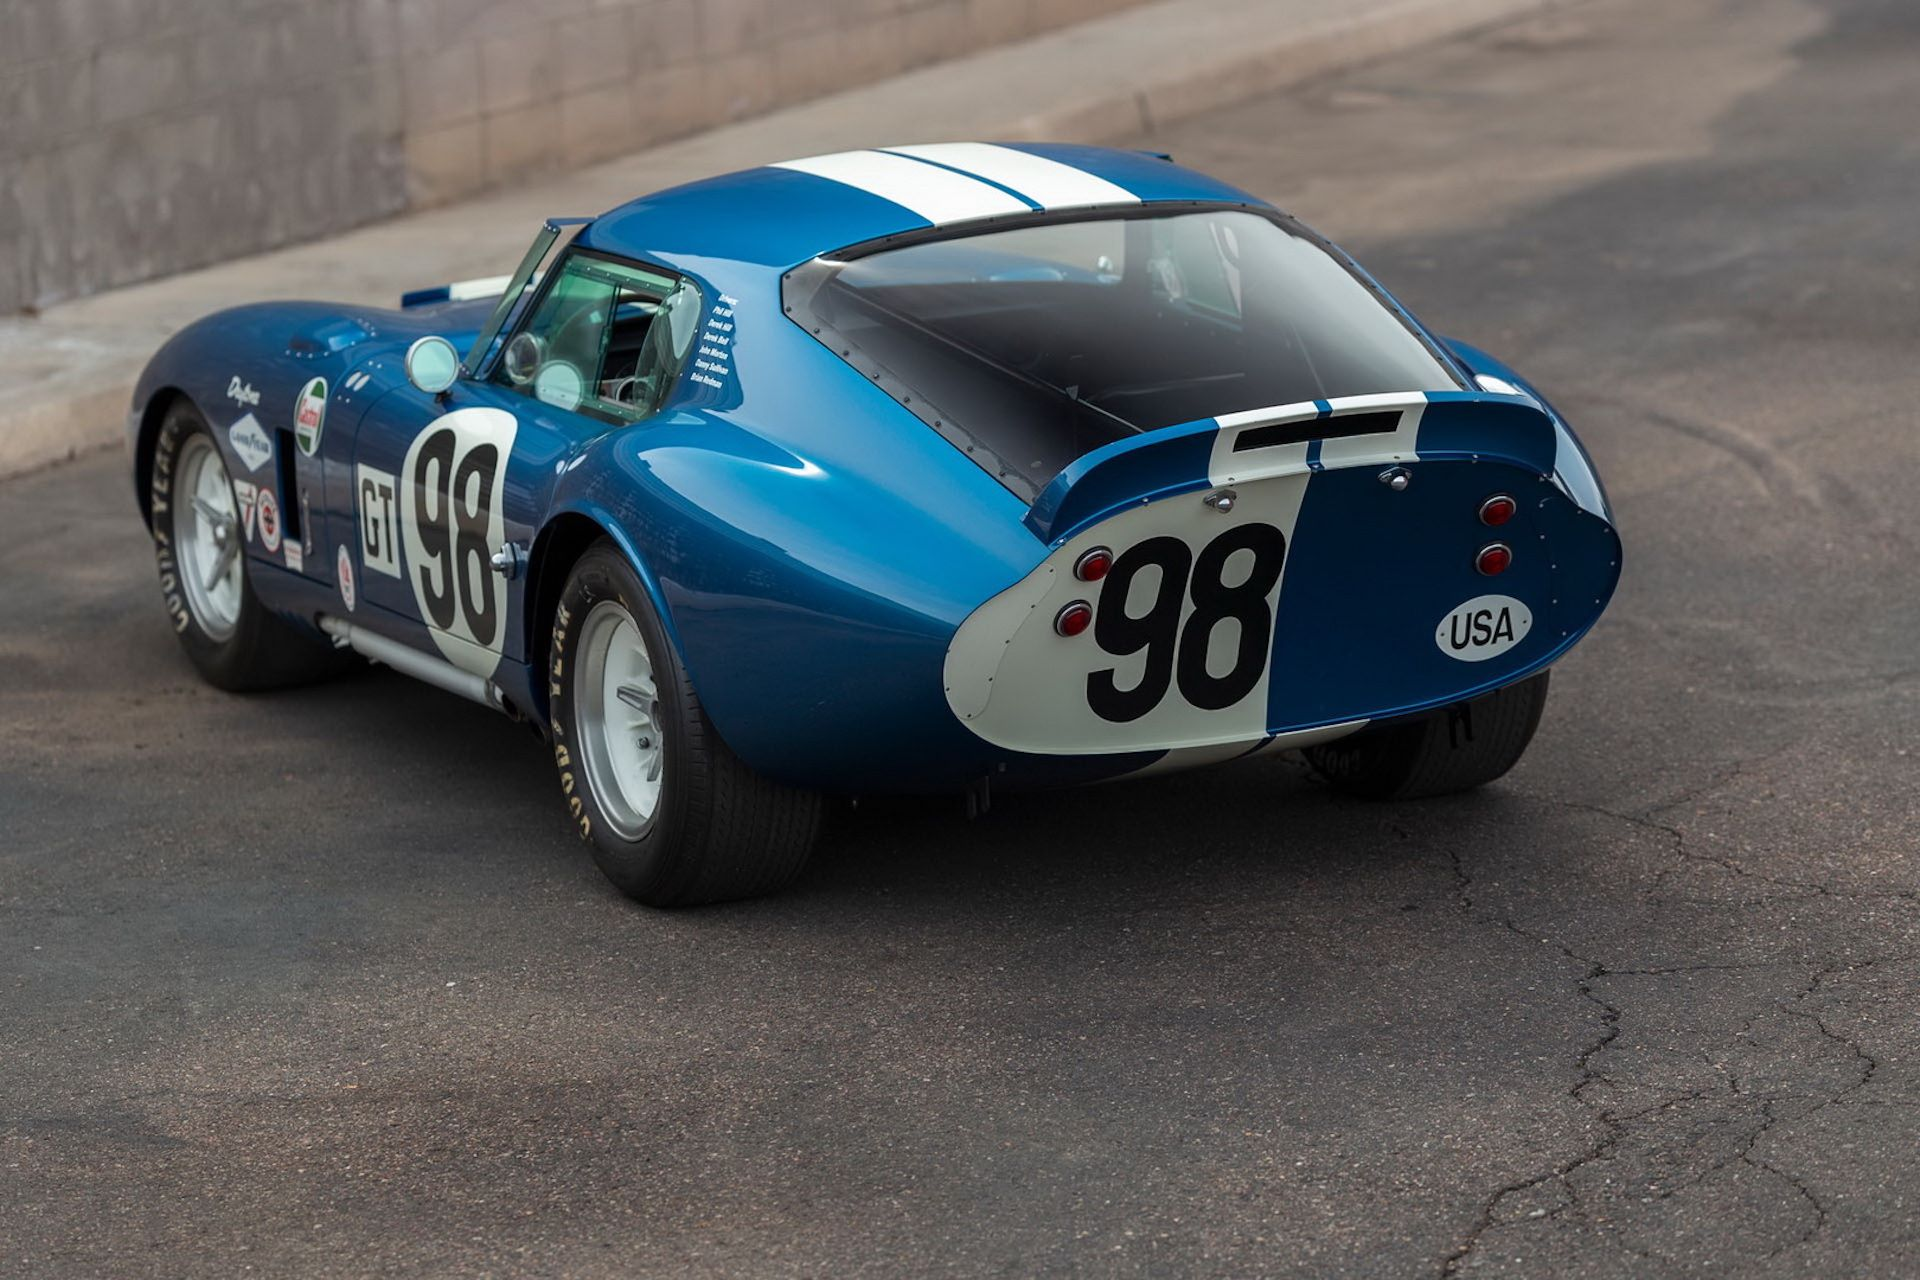 Daytona-Cobra-Carroll-Shelby-auction-AC-Cobra-1